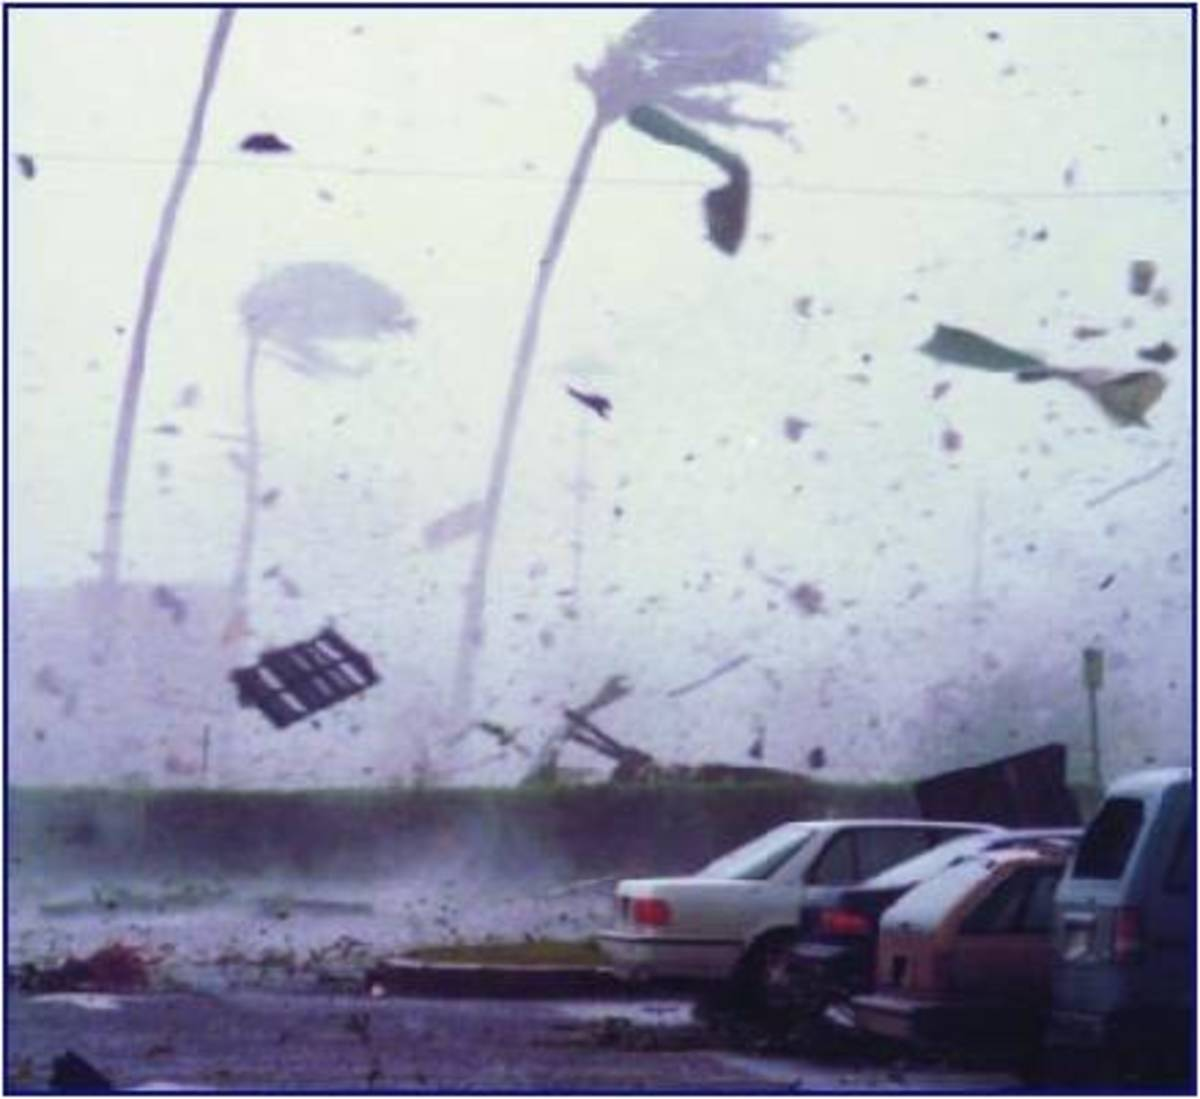 Hurricane Iniki- Kauai, Hawaii Sept. 11, 1992